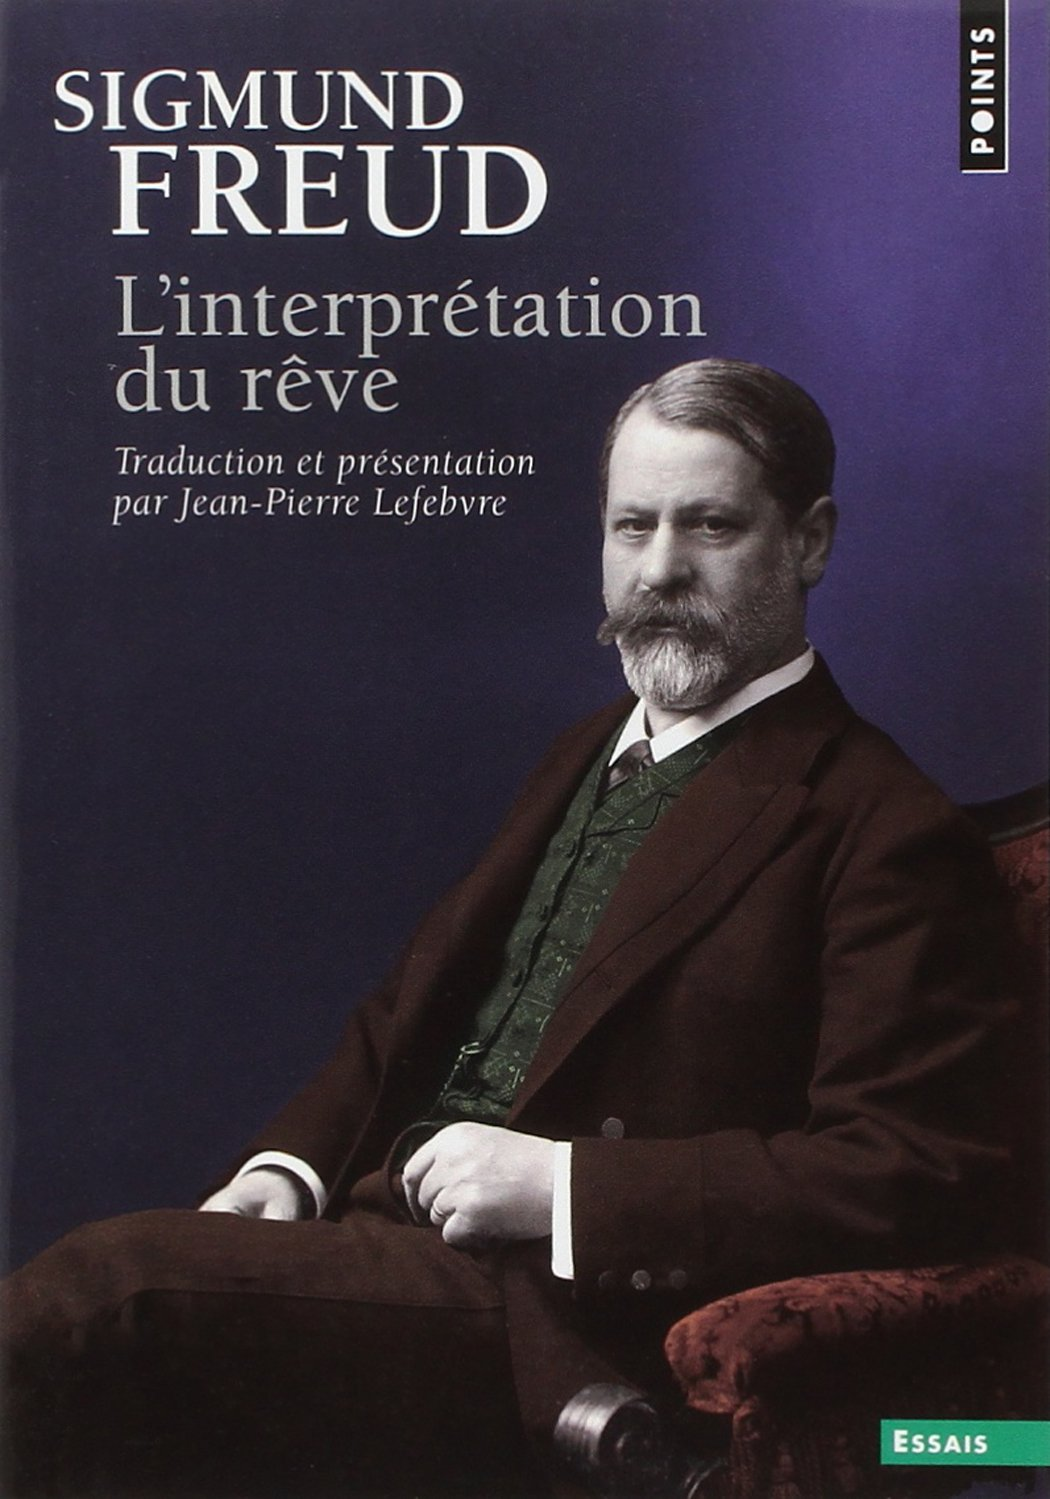 L'interprétation du rêve - Sigmund Freud